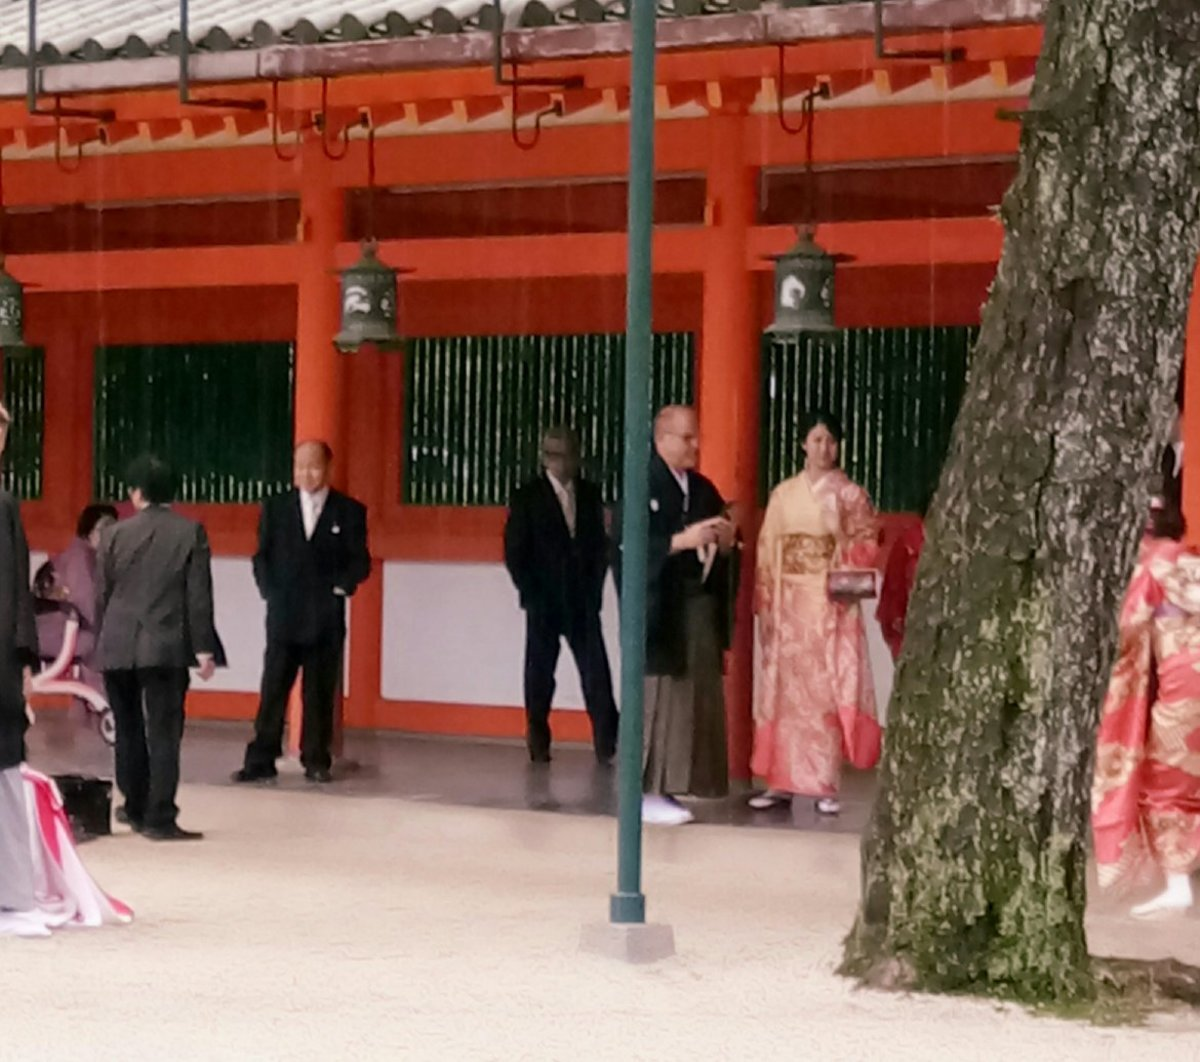 Sneaked upon a Japanese Wedding Ceremony